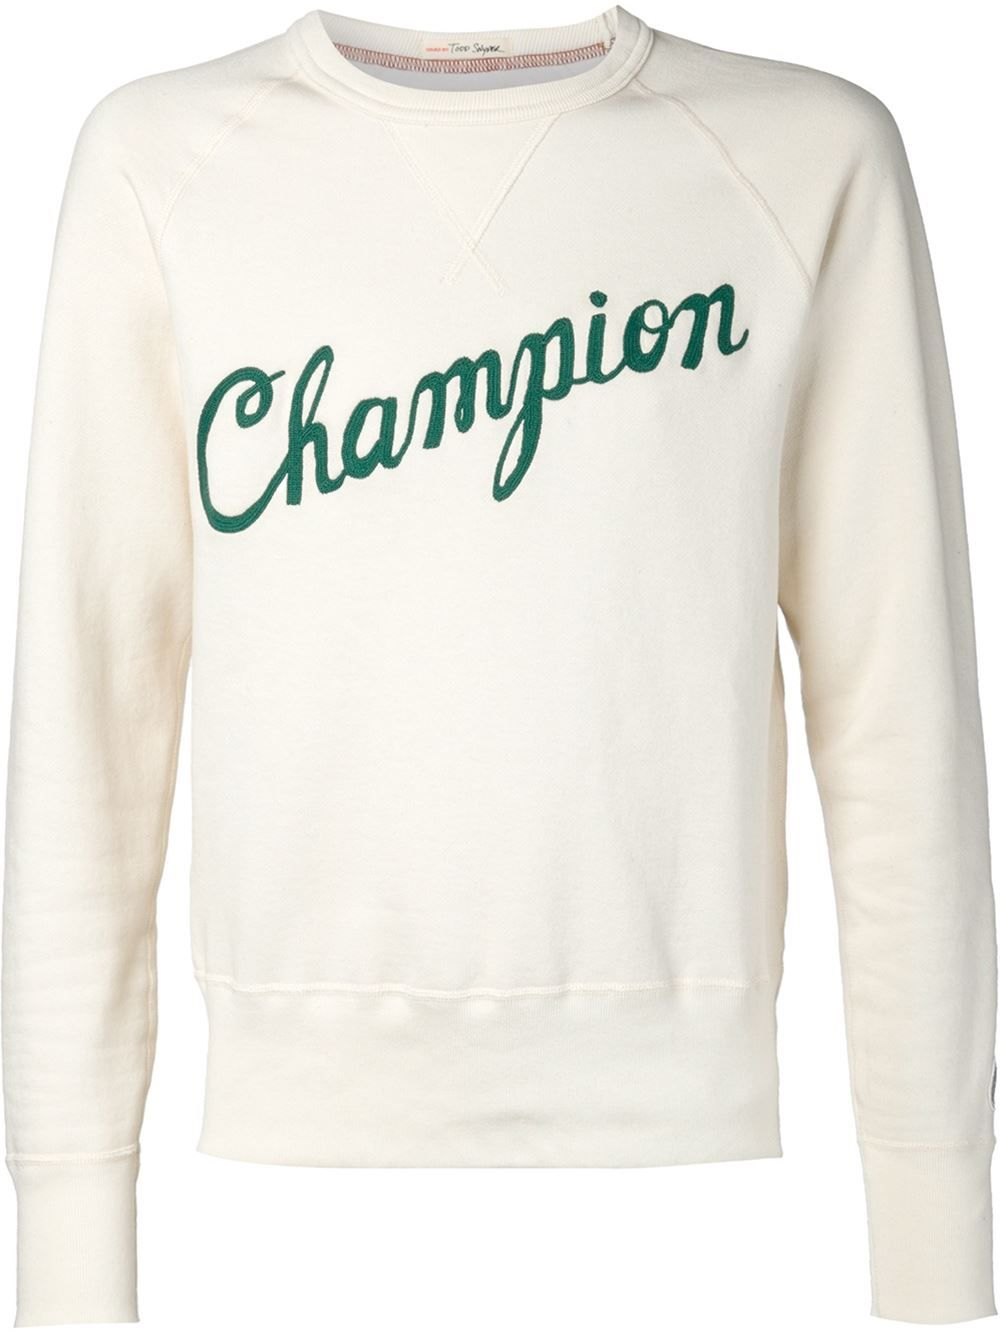 Champion Todd Snyder X Champion Embroidered Logo Sweatshirt - The Webster - Farfetch.com